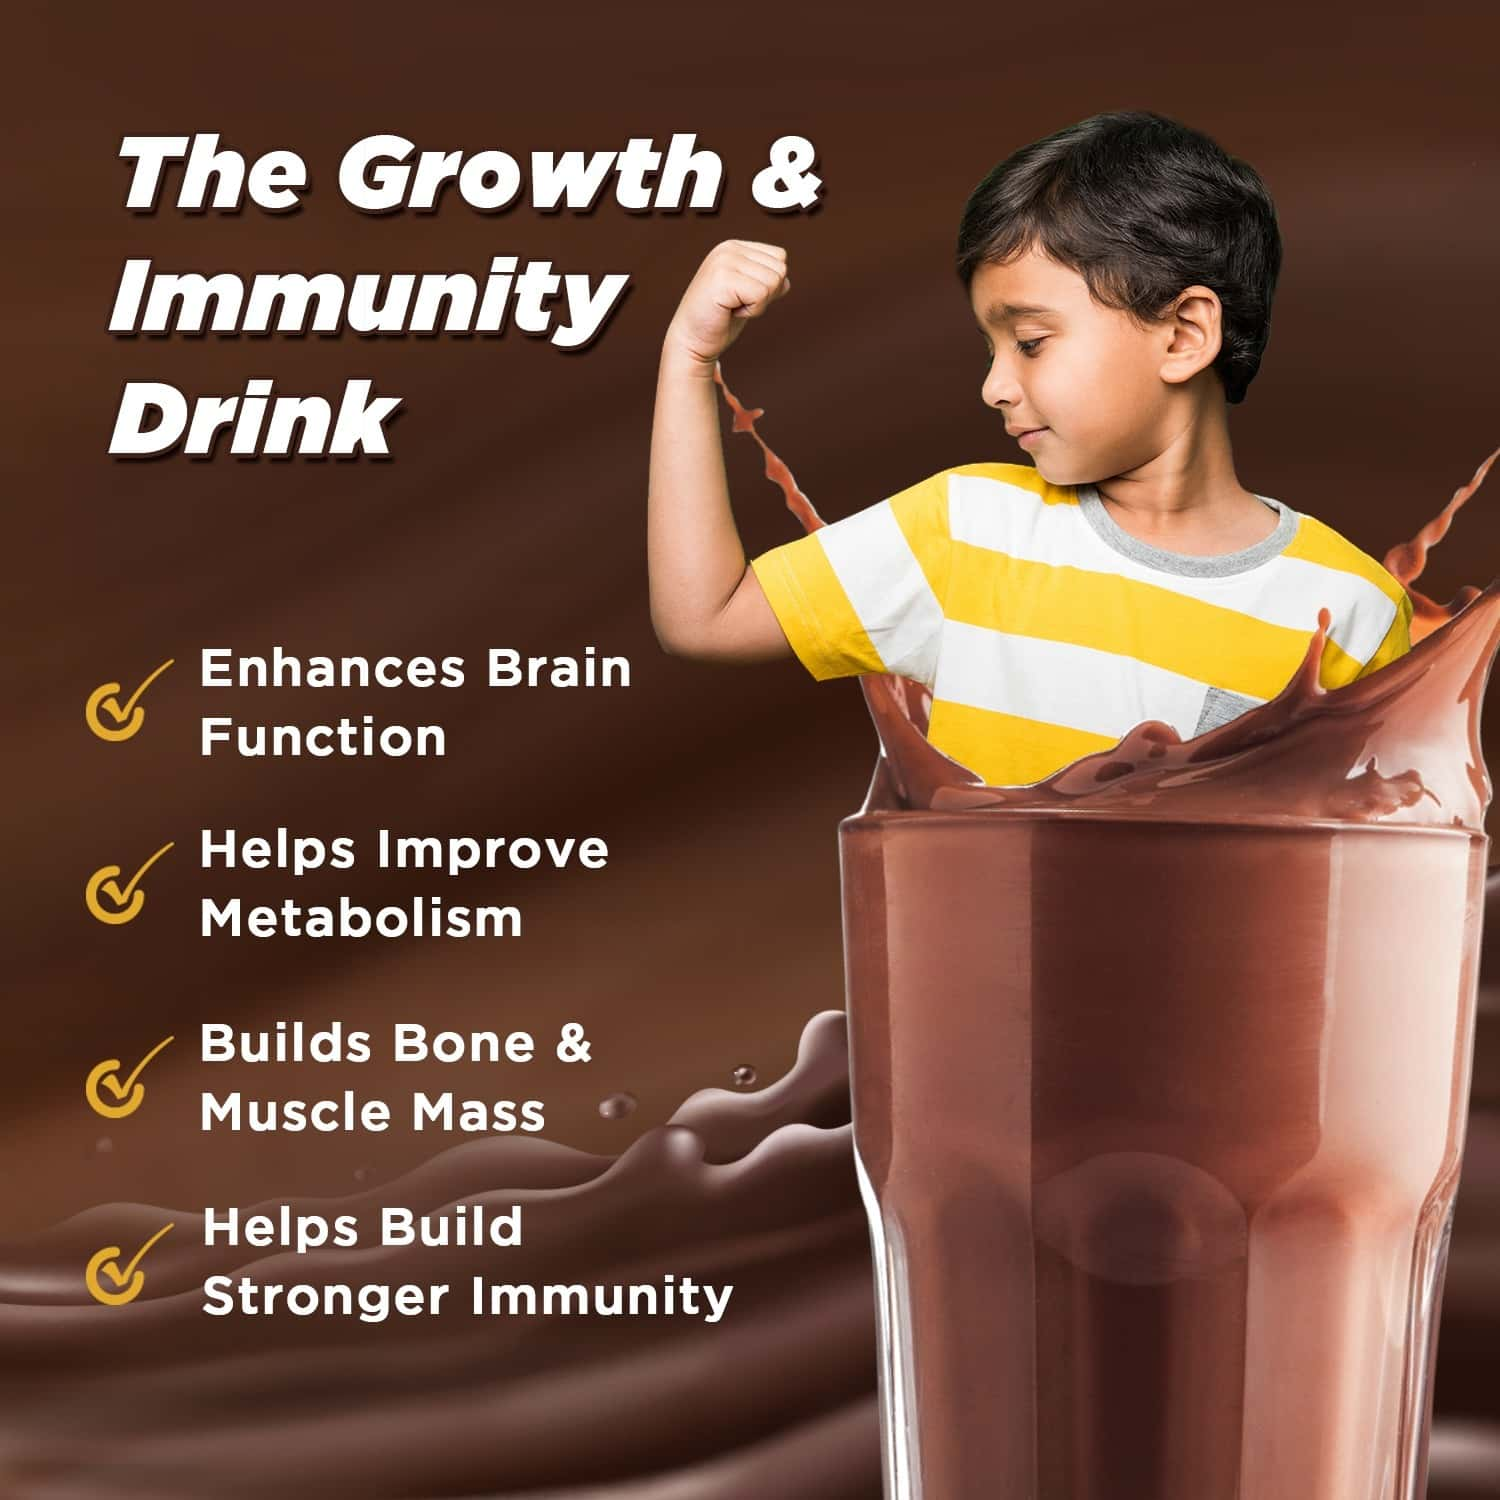 Maltwin Nutrition Health Drink For Kids For Growth & Immunity, Chocolate Bourbon - 450 Gm Refill Box